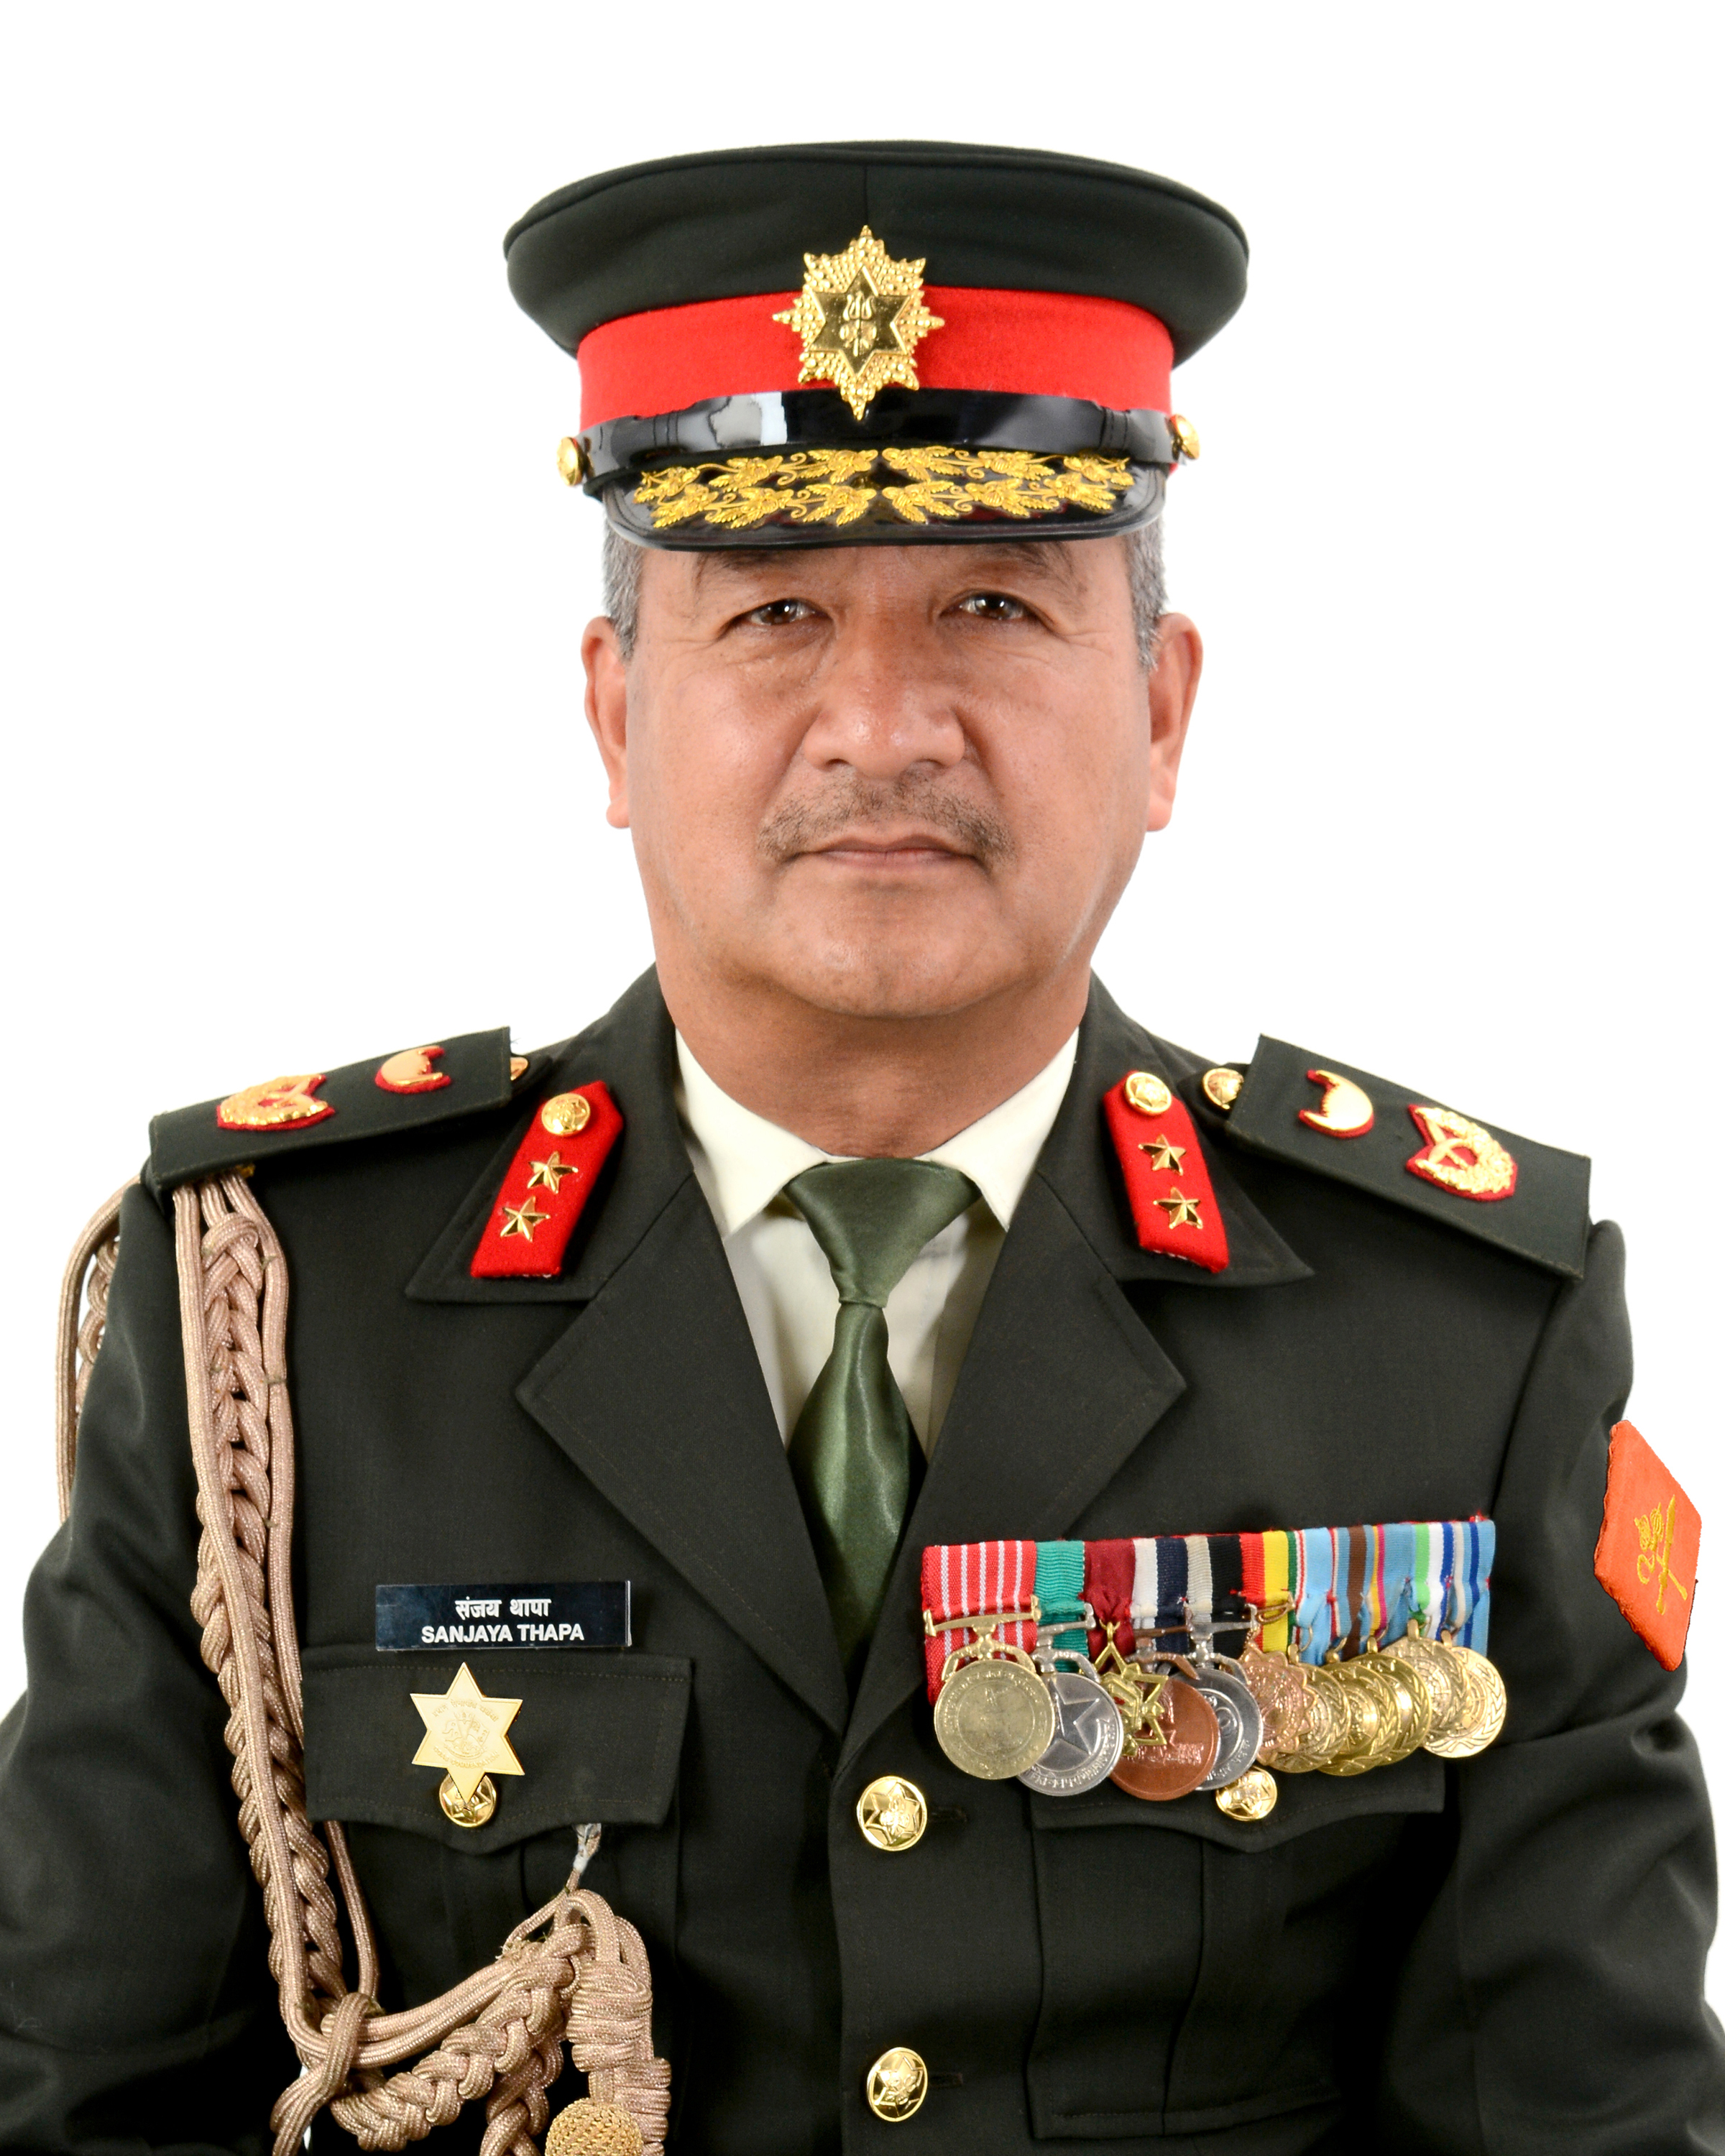 Major General Sanjaya Thapa